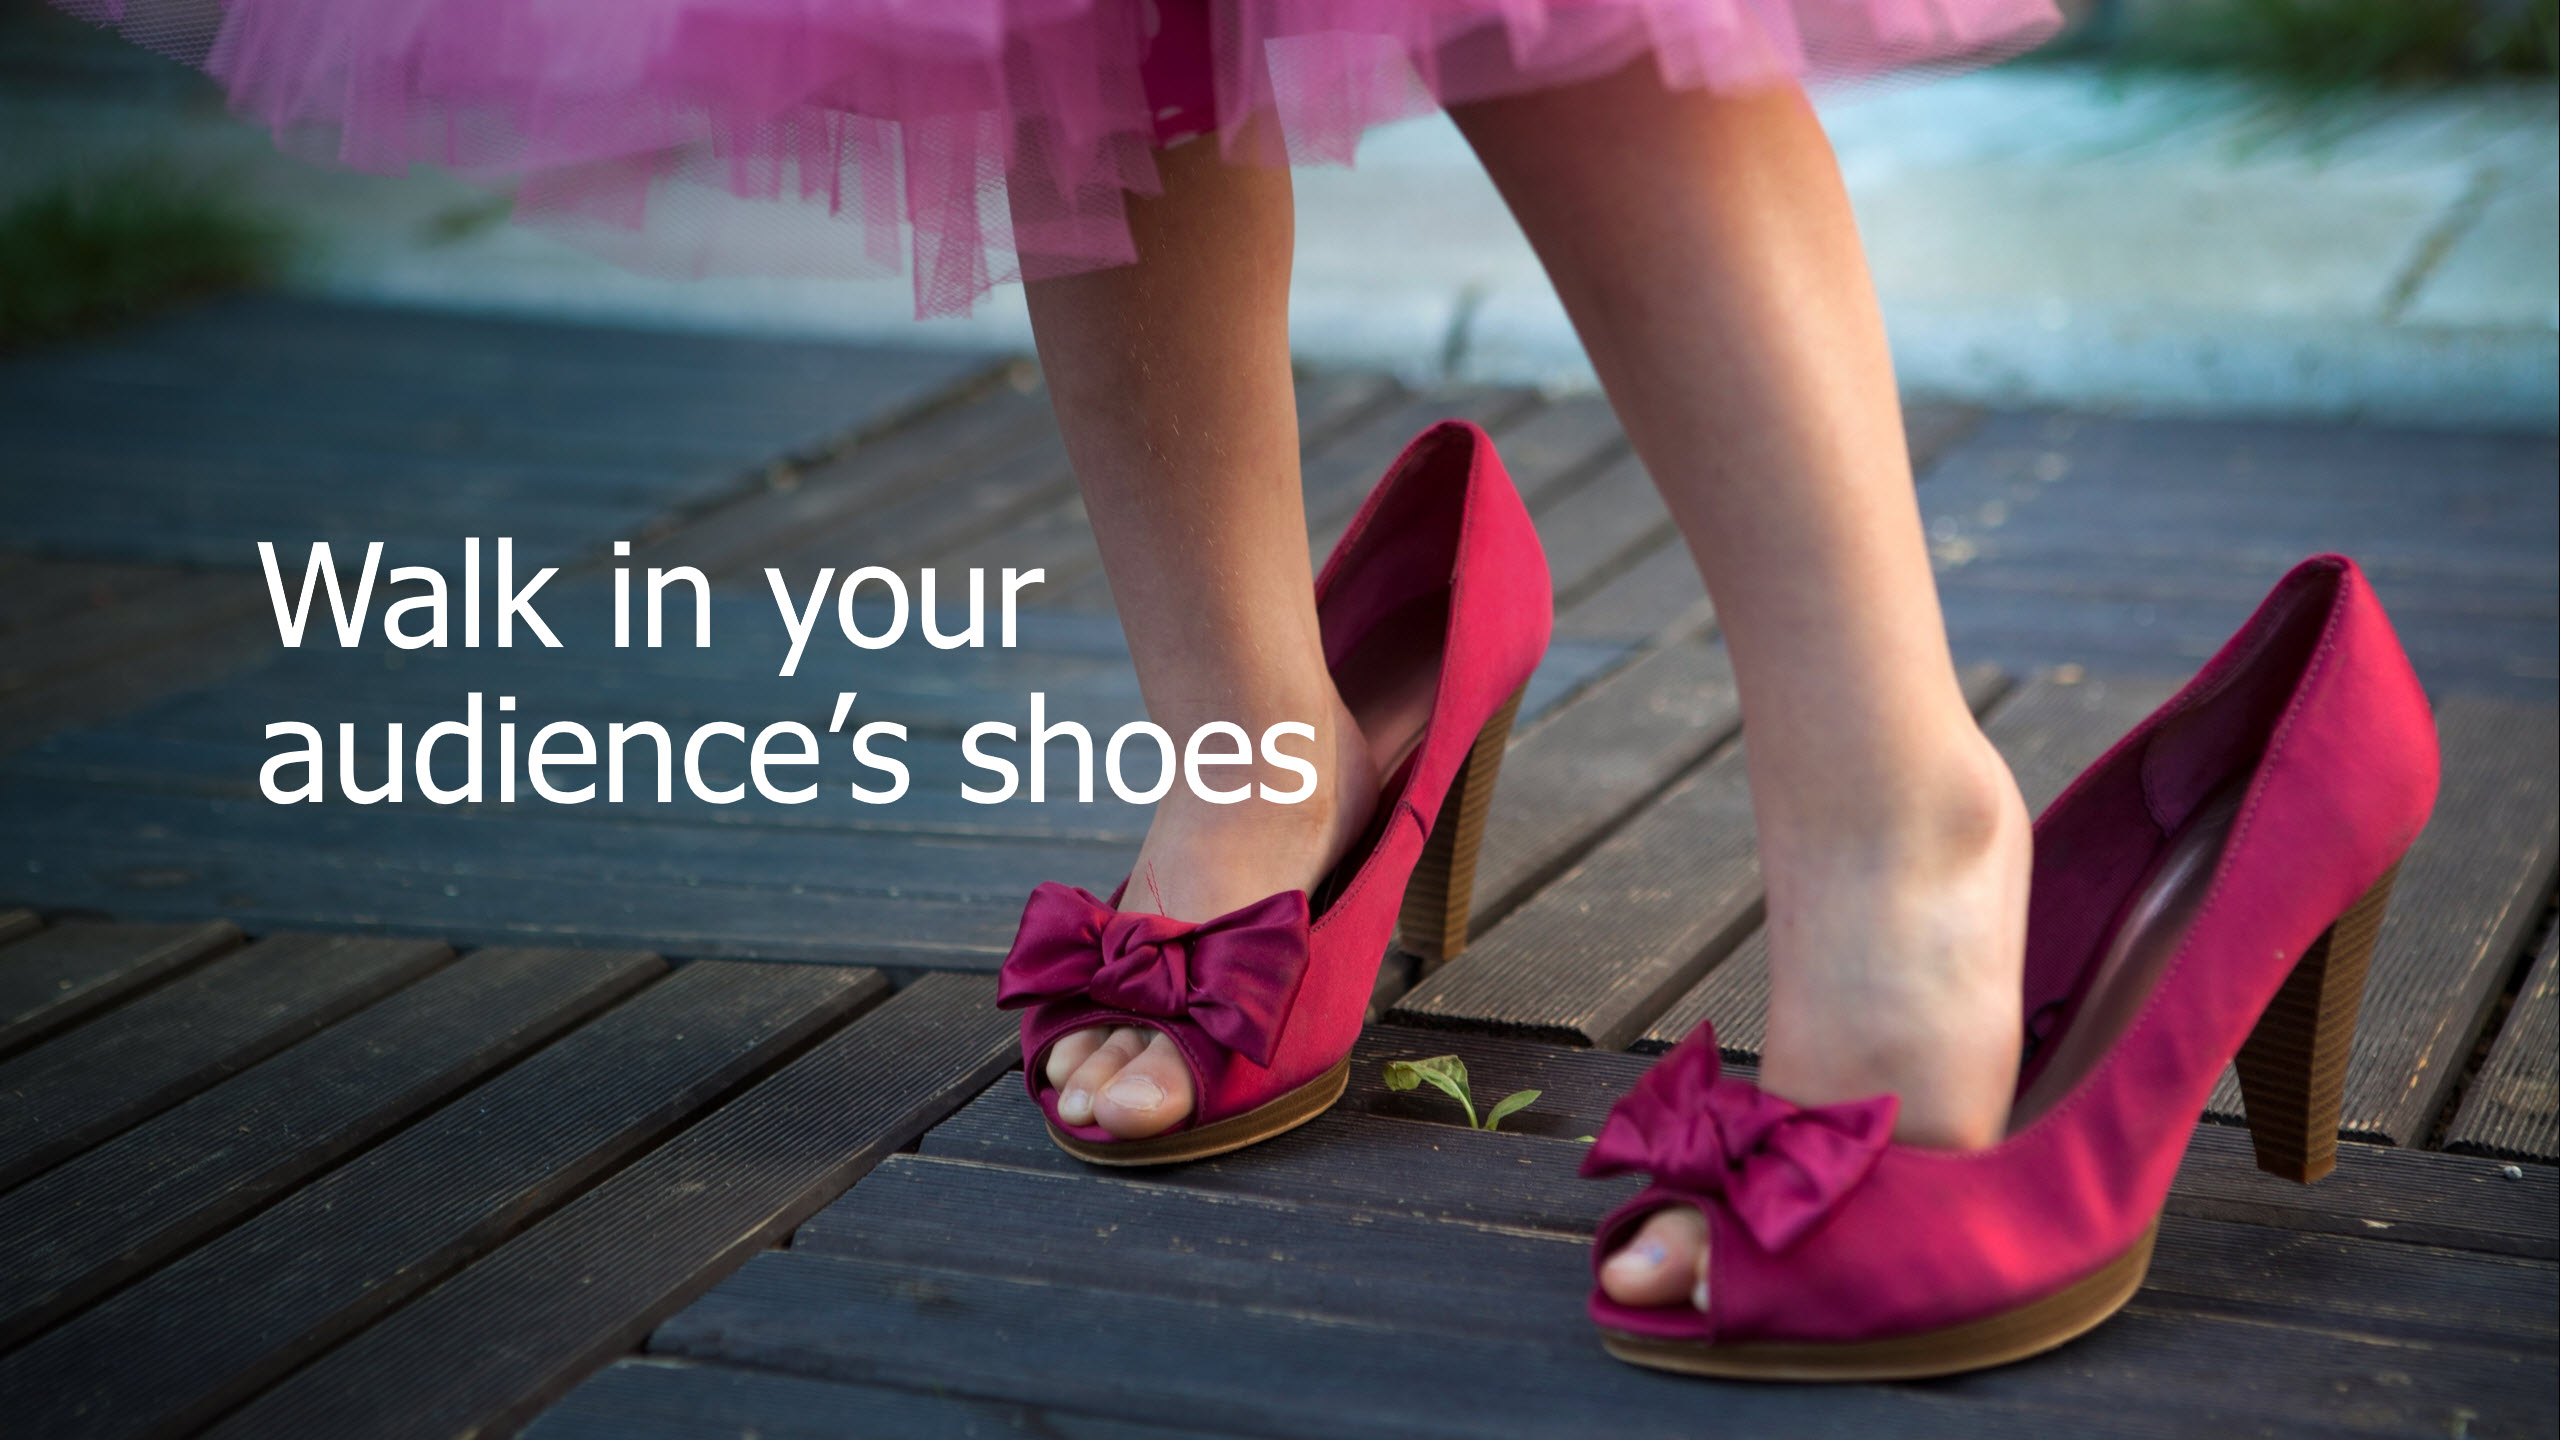 Walk in your audiences shoes